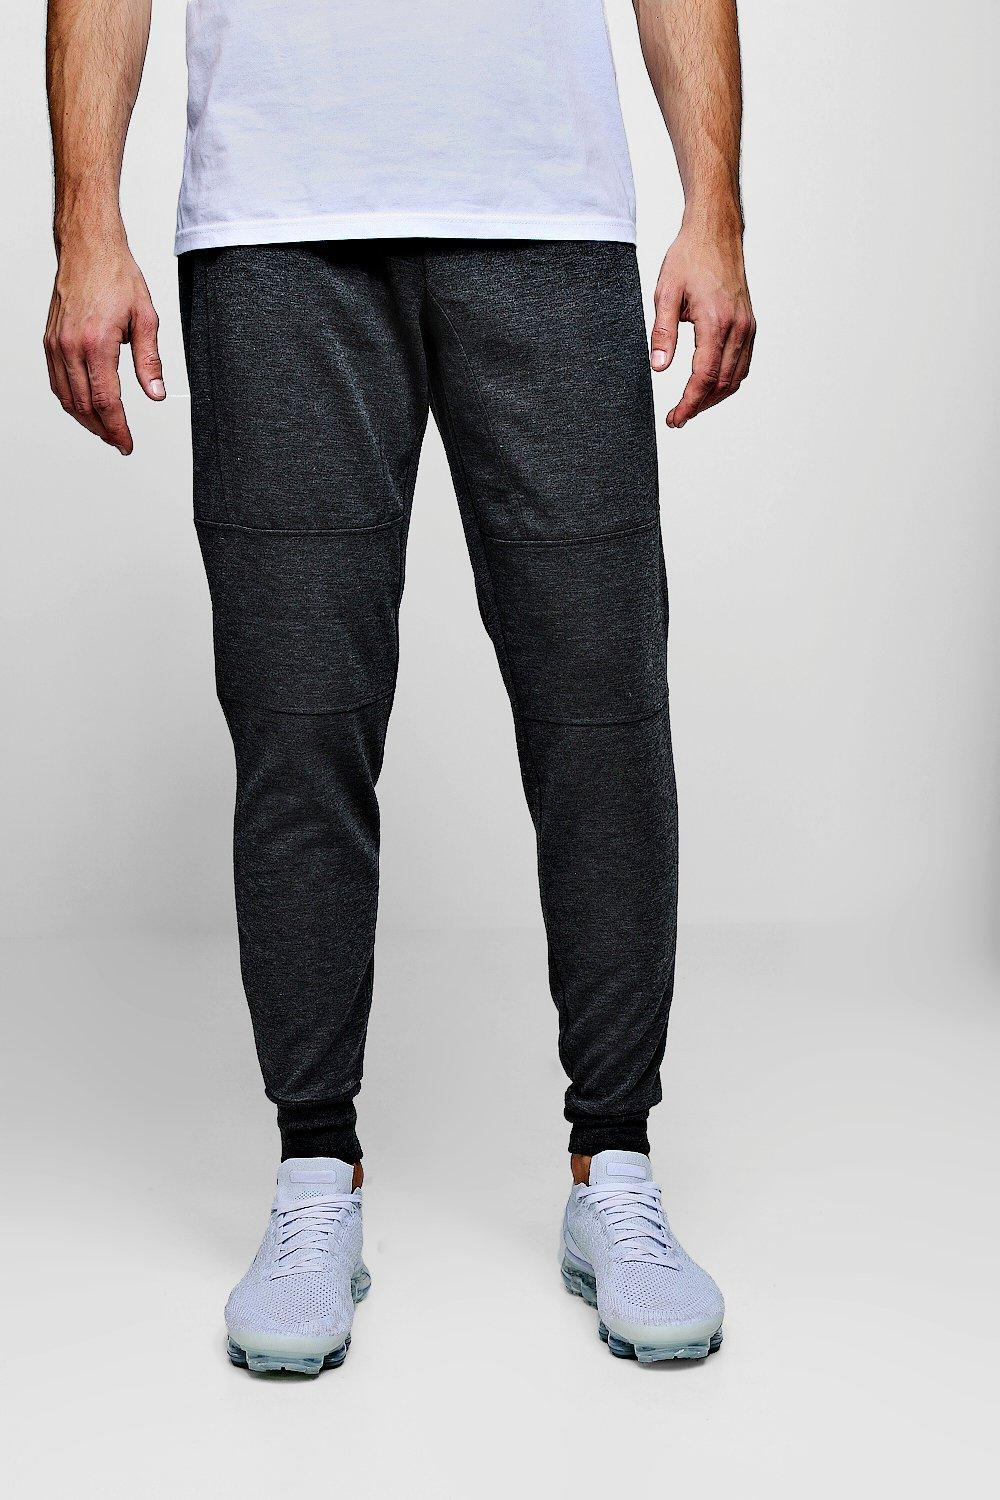 Panel Jersey Panel Detail Jersey Joggers Joggers charcoal Detail RwzFBqngZ